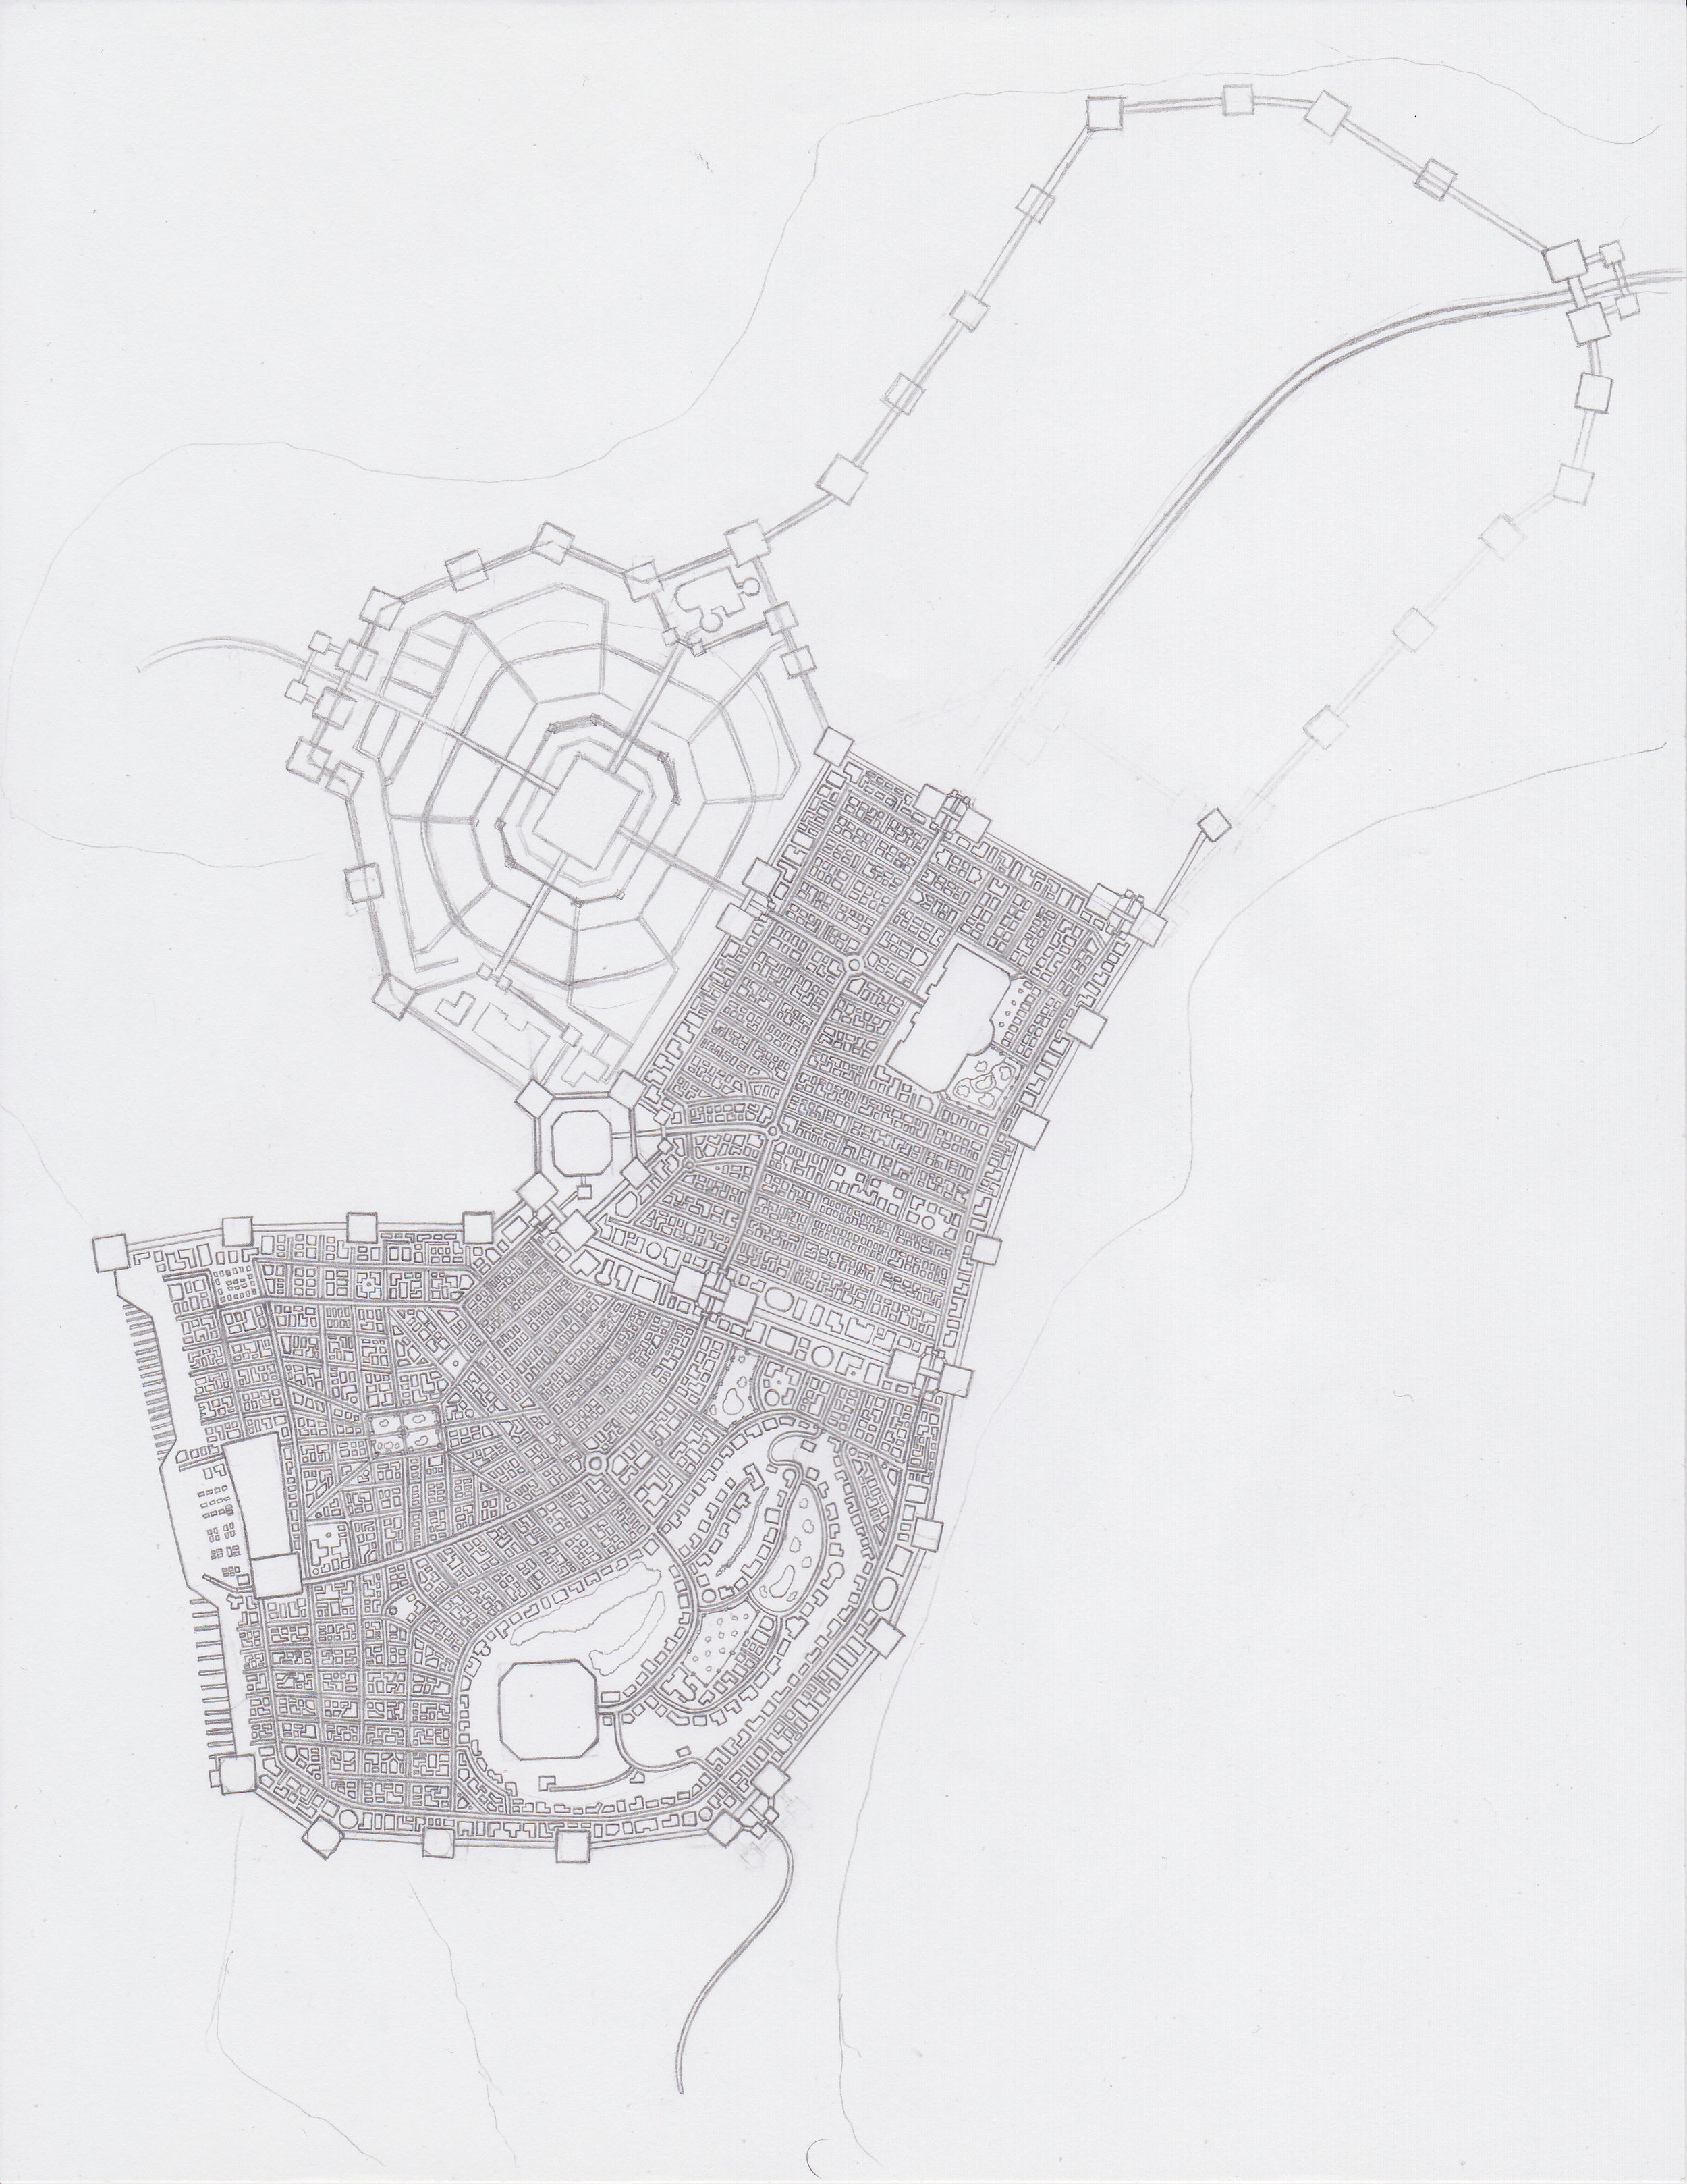 The city of Degwoch, in its current state of drawing progress.